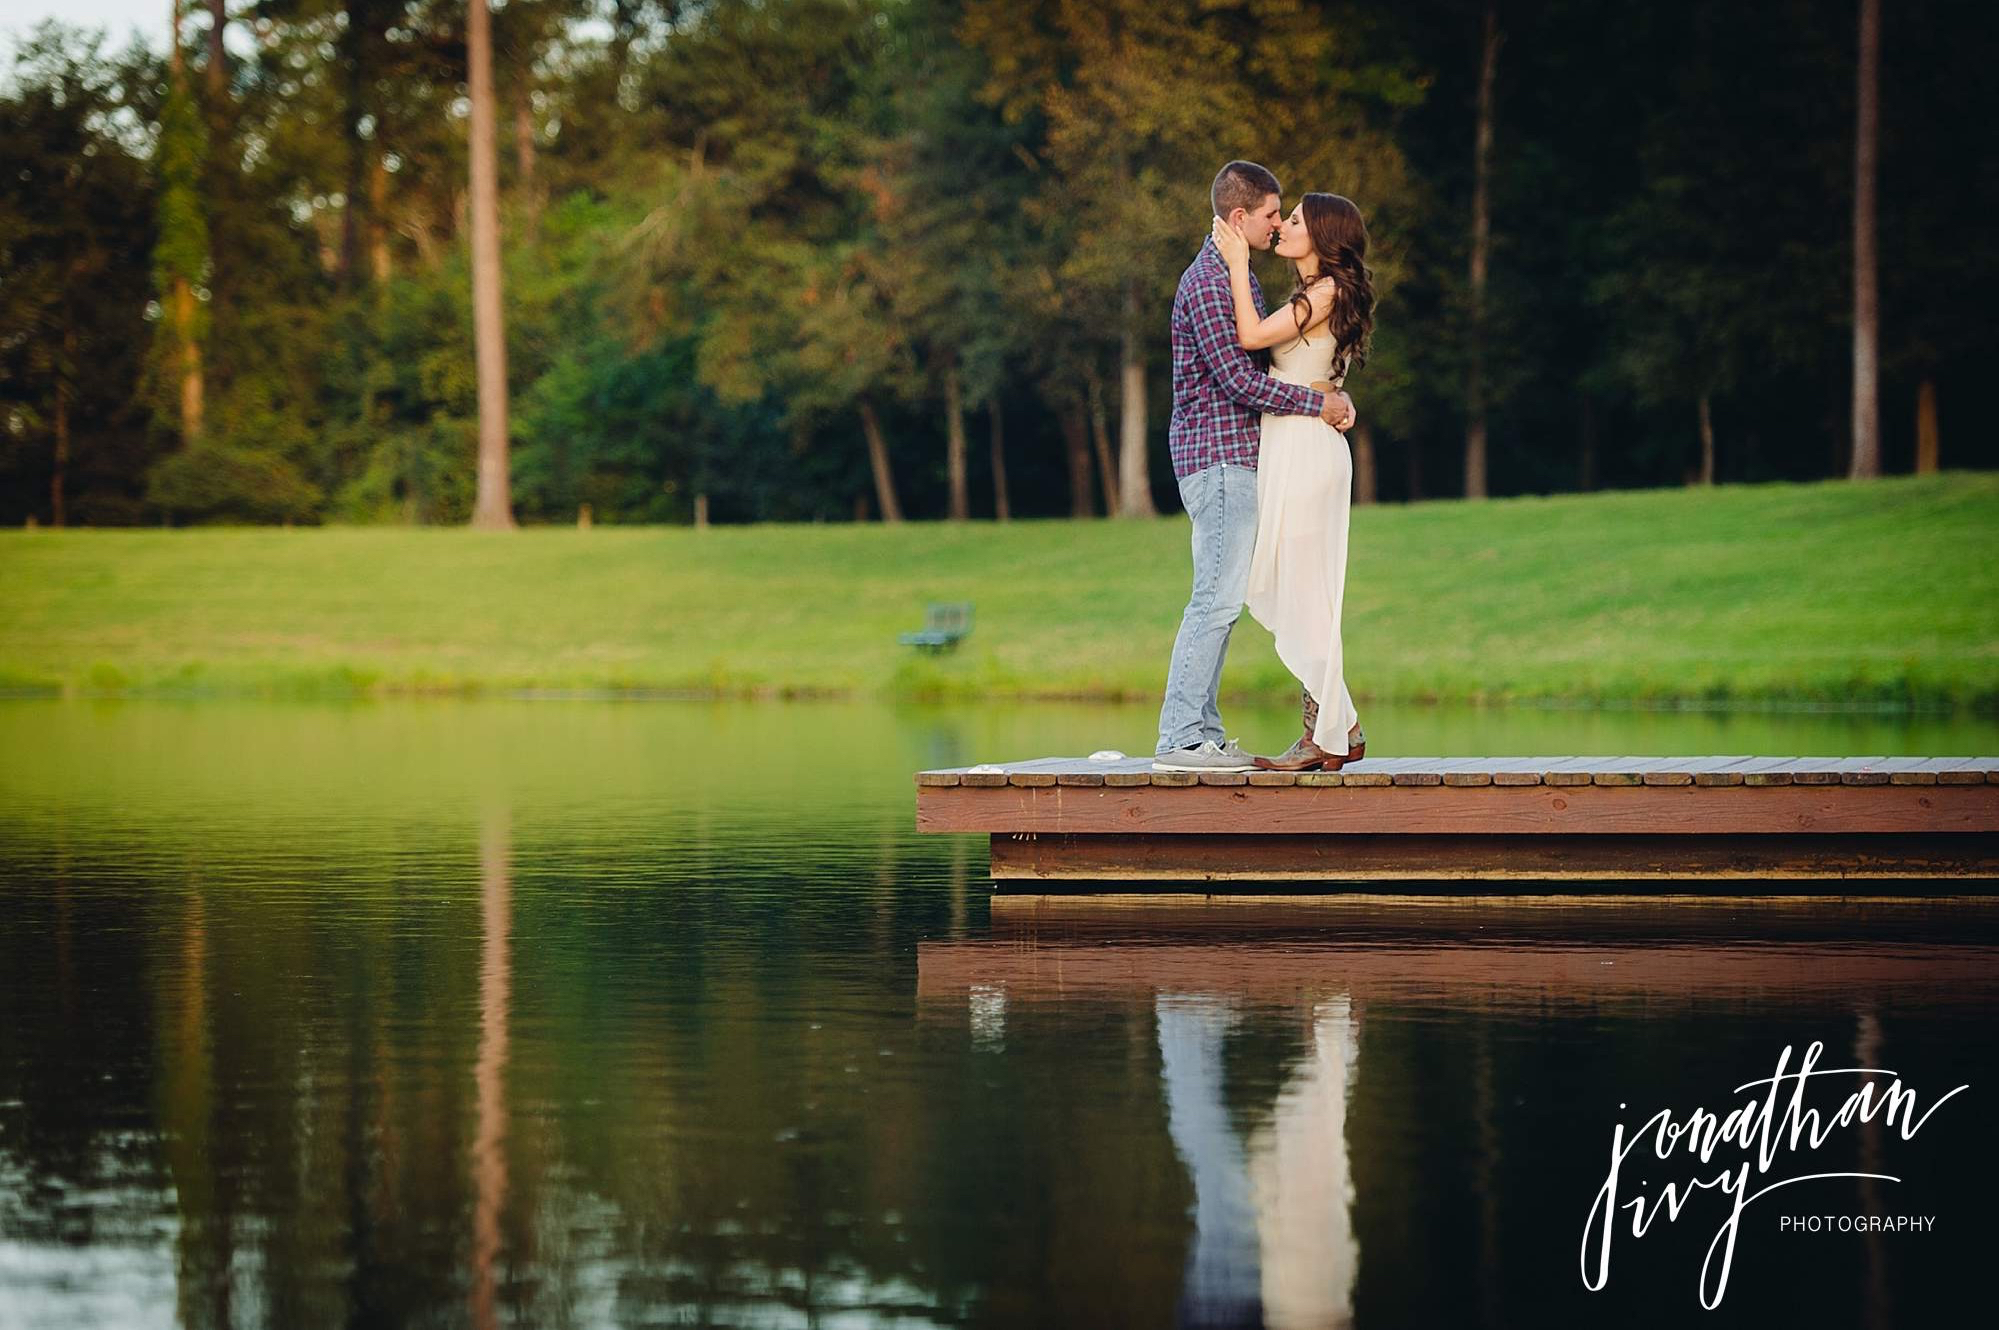 Lake engagement photos in the woodlands